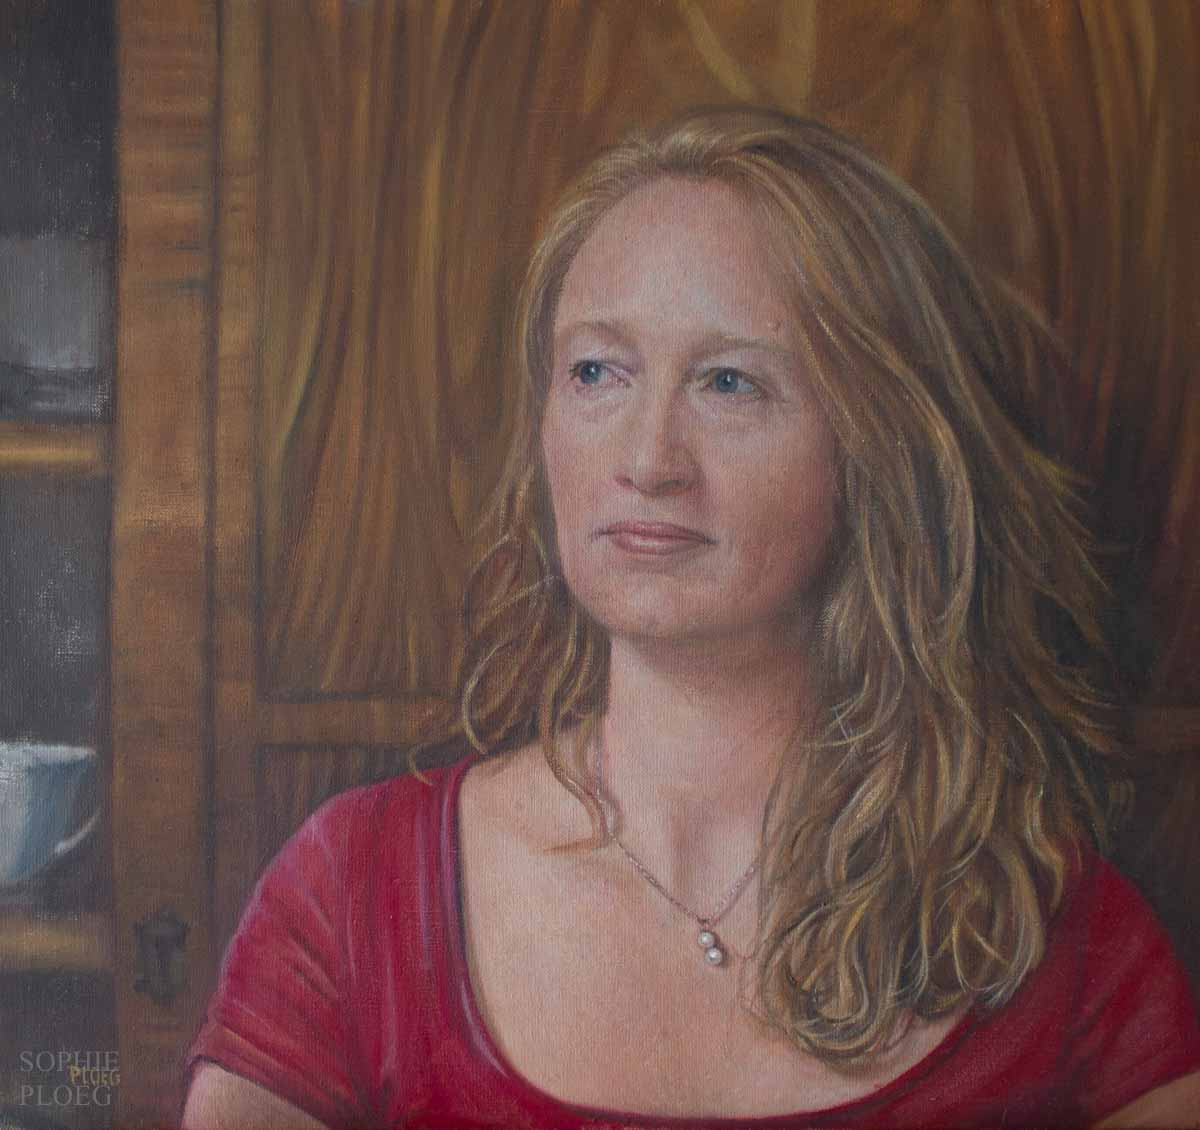 Sophie Ploeg, Nicola, oil on linen, 35x38cm. Commissioned.